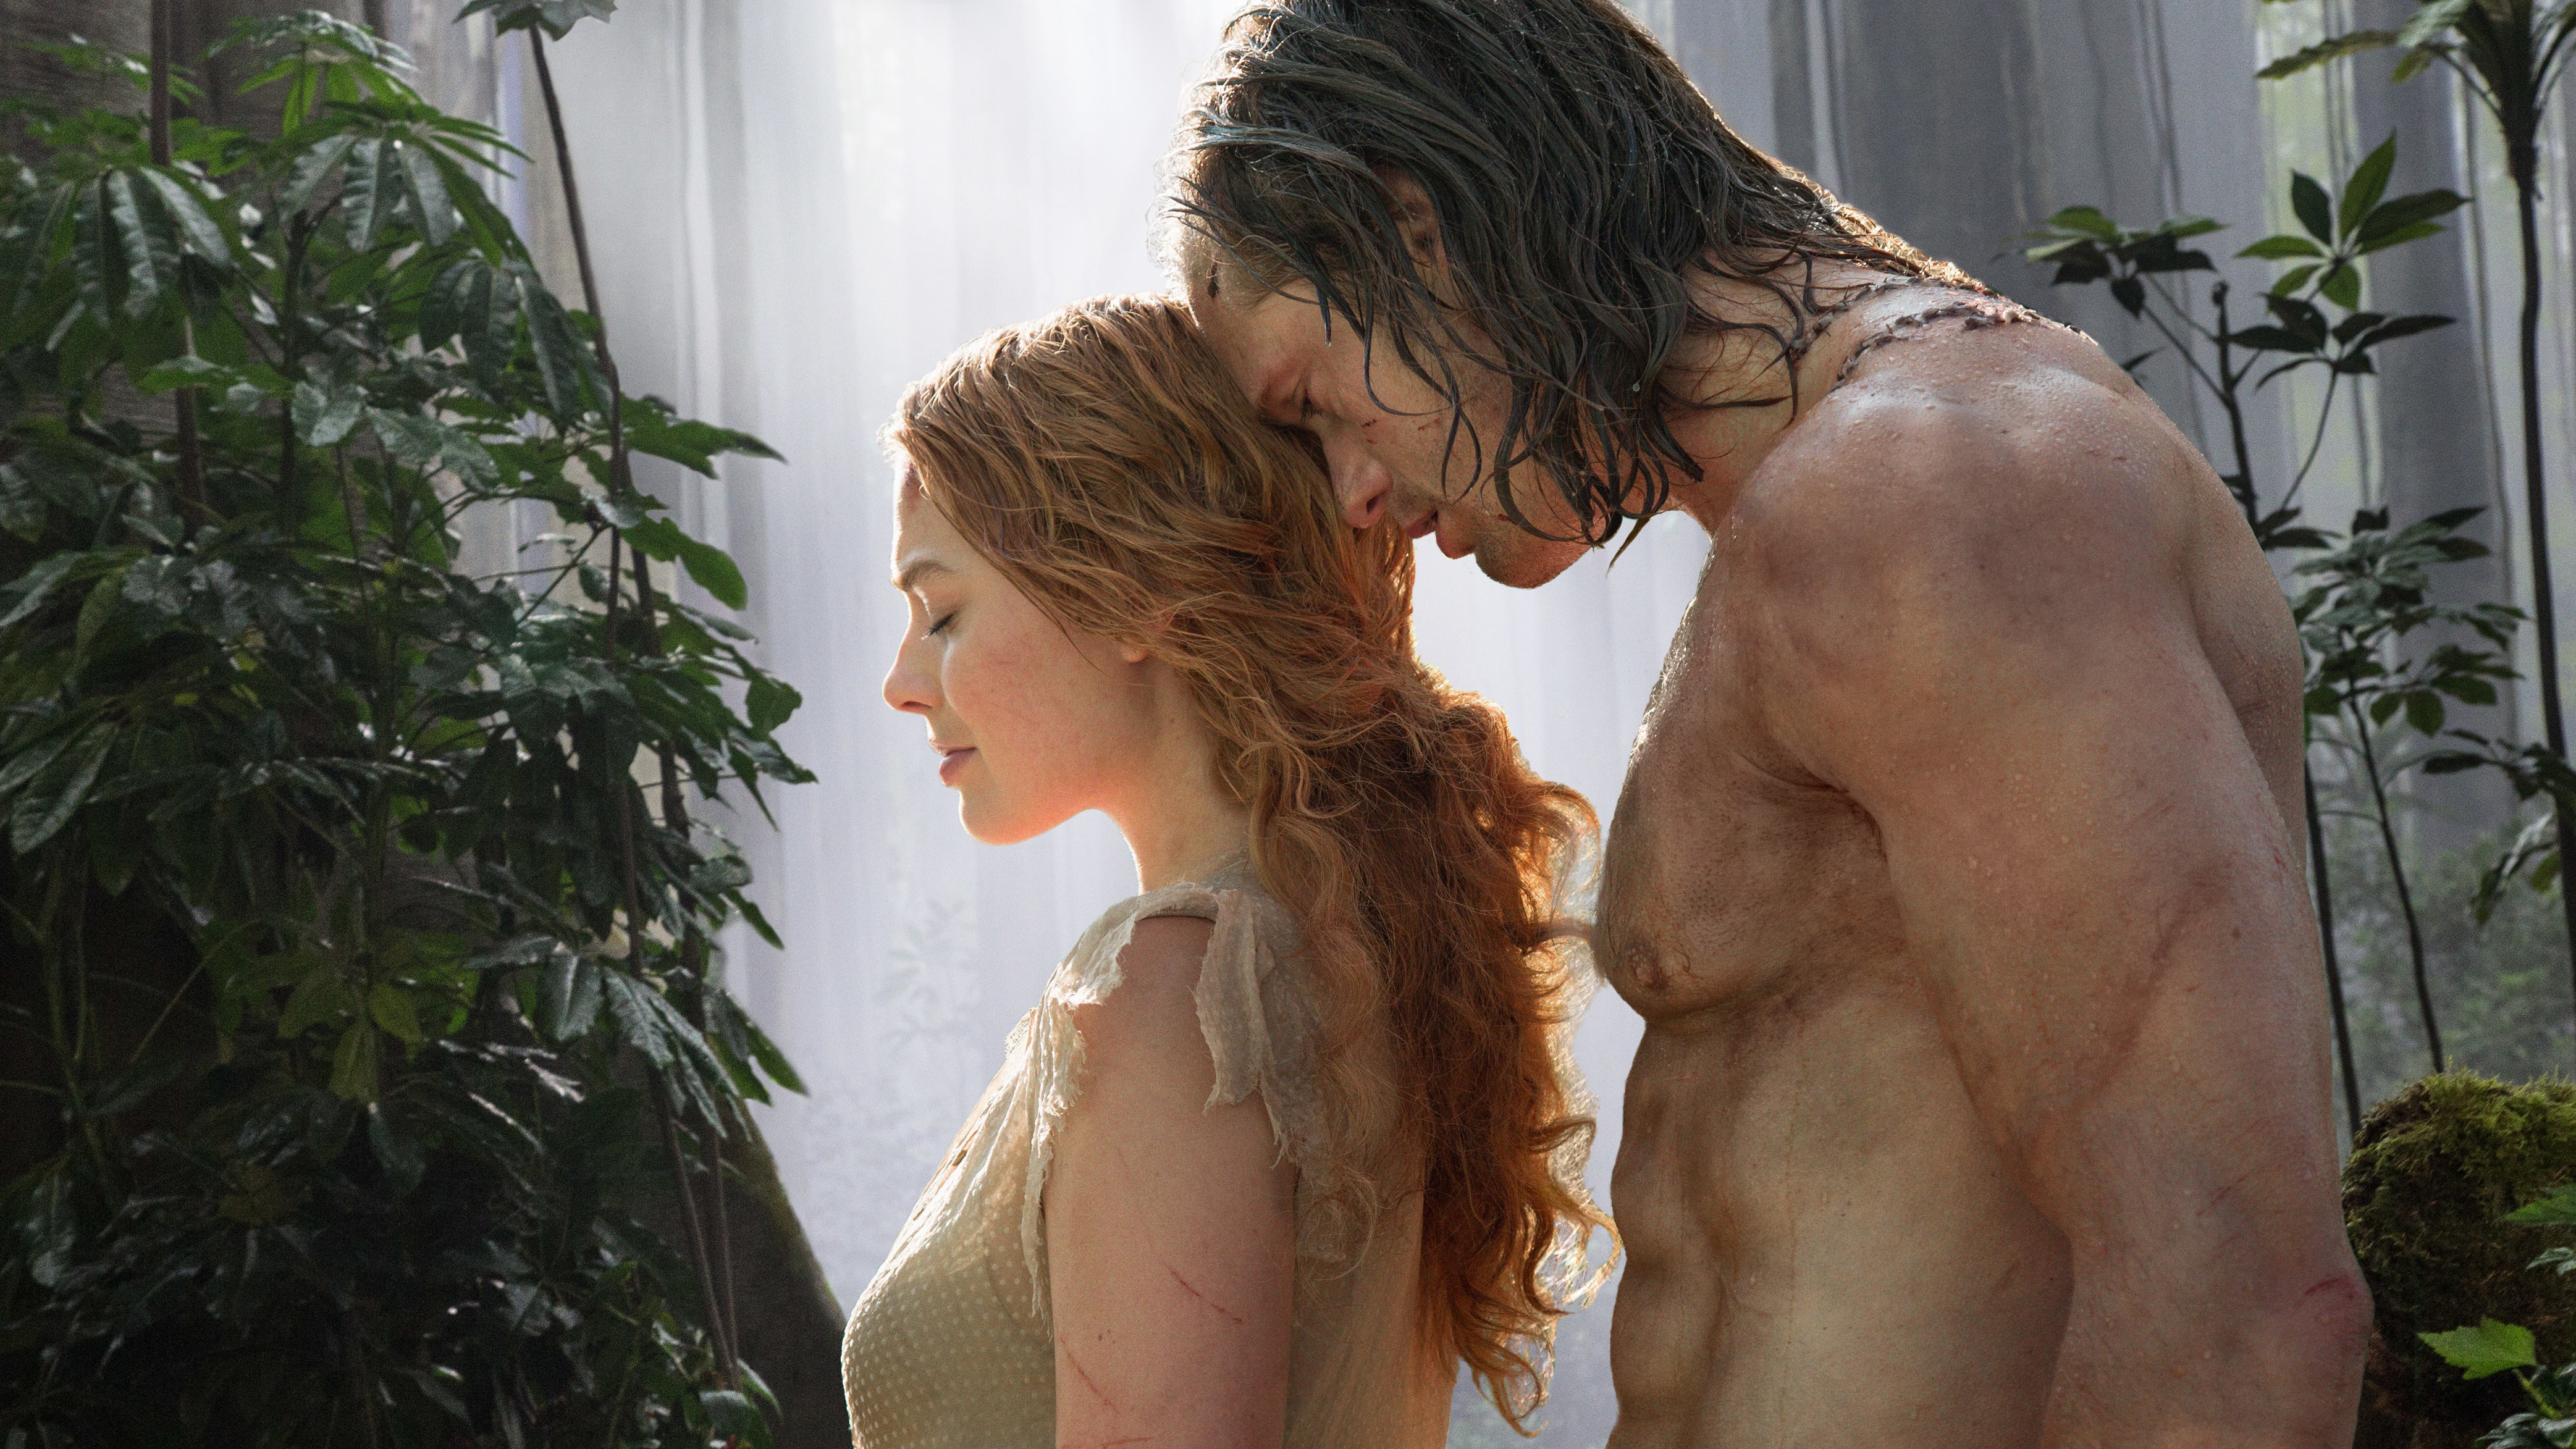 the-legend-of-tarzan-4170x2346-margot-robbie-alexander-skarsgard-4k-743